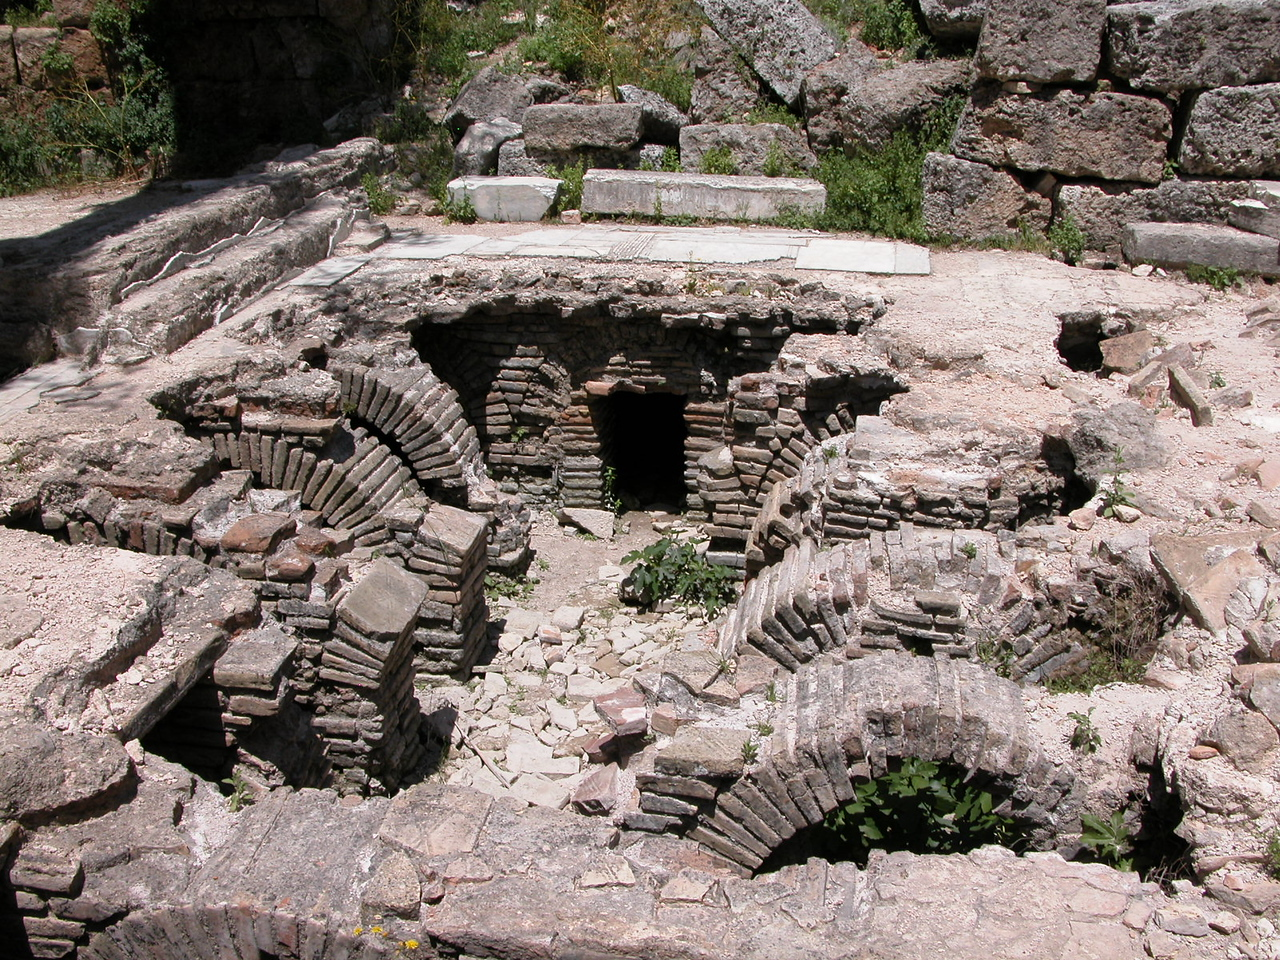 Collapsed Hypocaust system